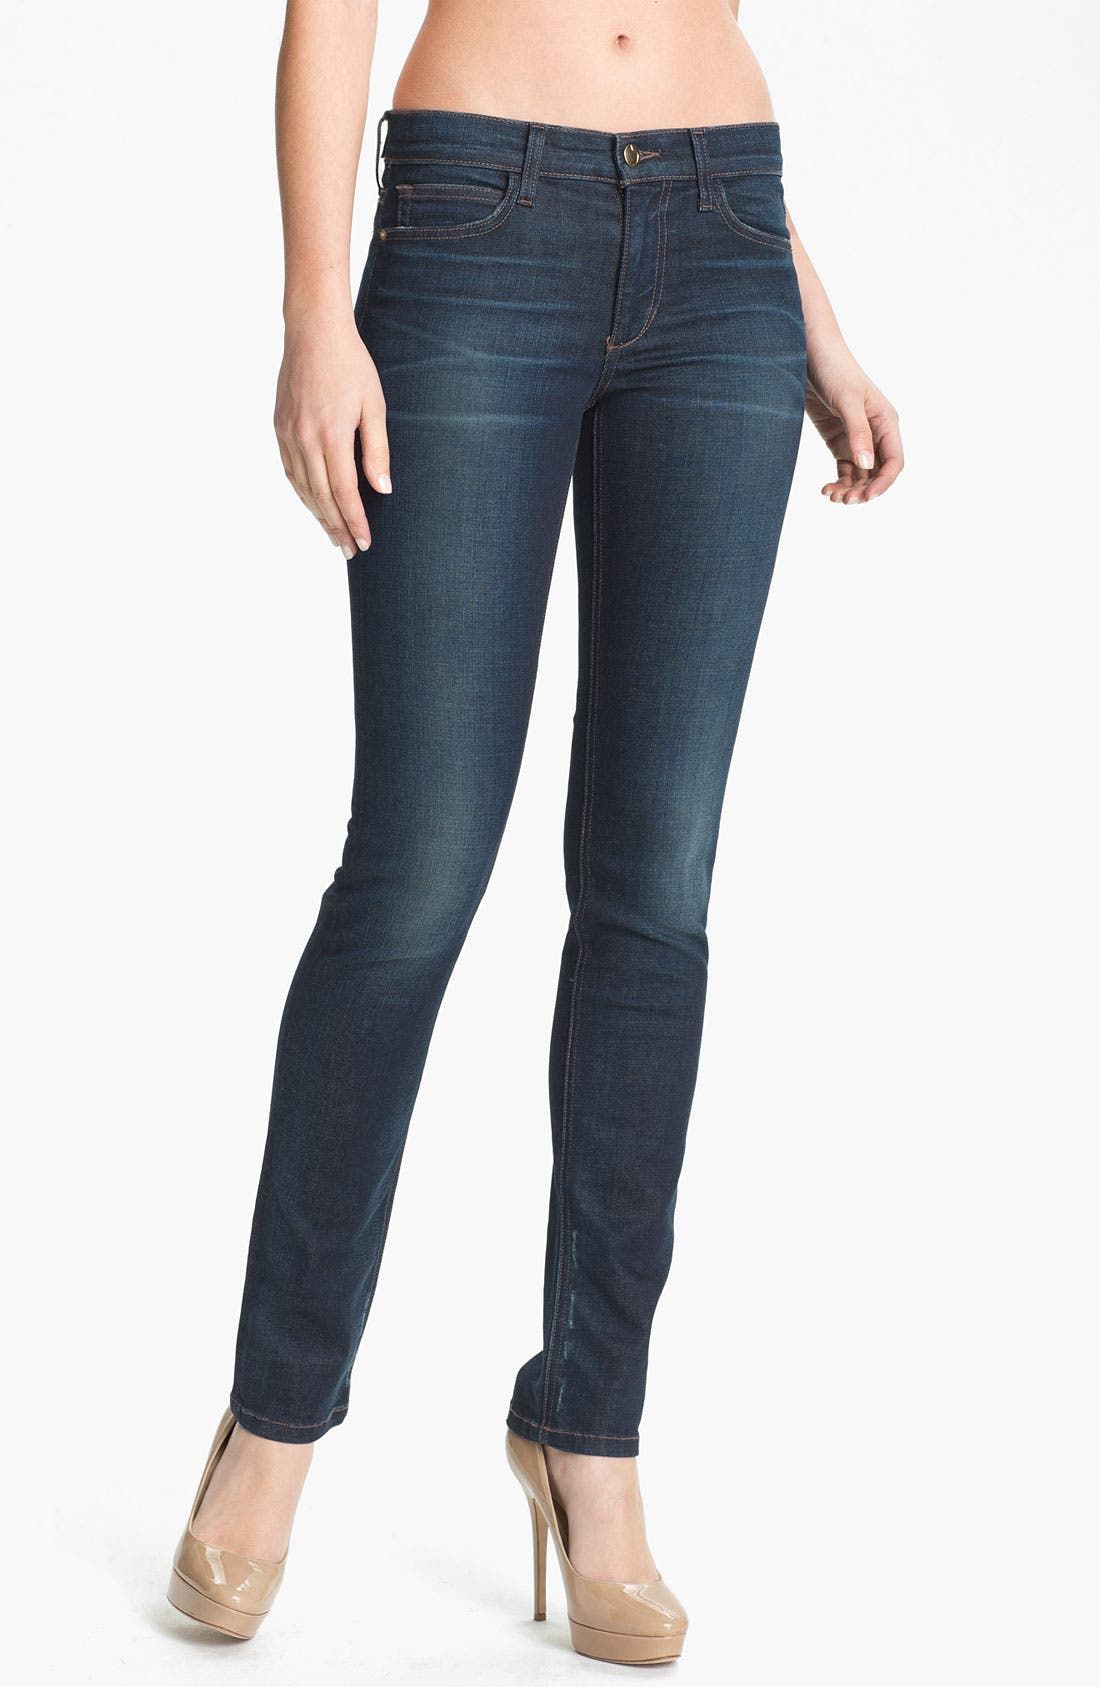 Alternate Image 1 Selected - Joe's 'Vintage Reserve' Straight Leg Jeans (Roxalana)